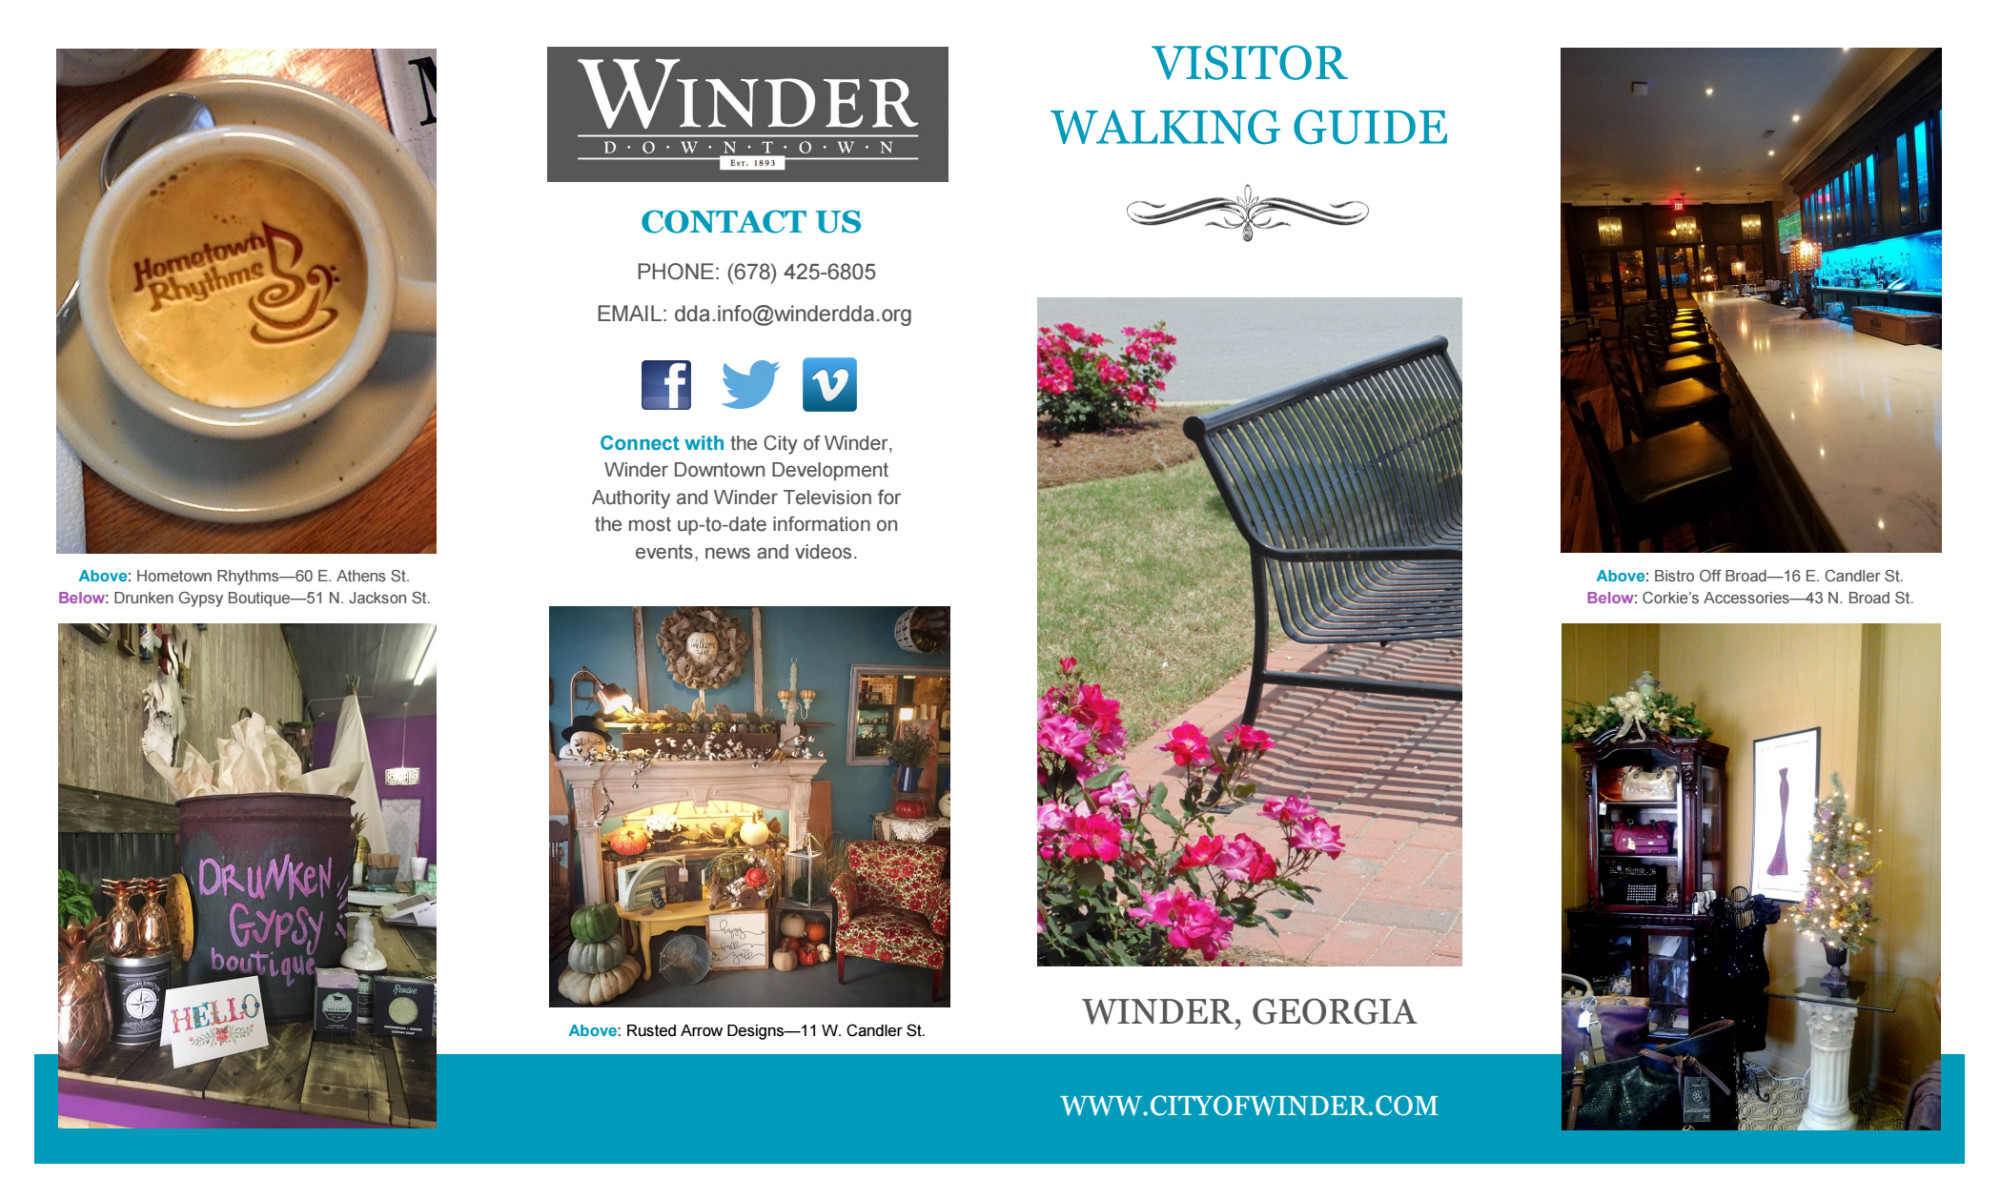 Winder: Visitor Walking Guide